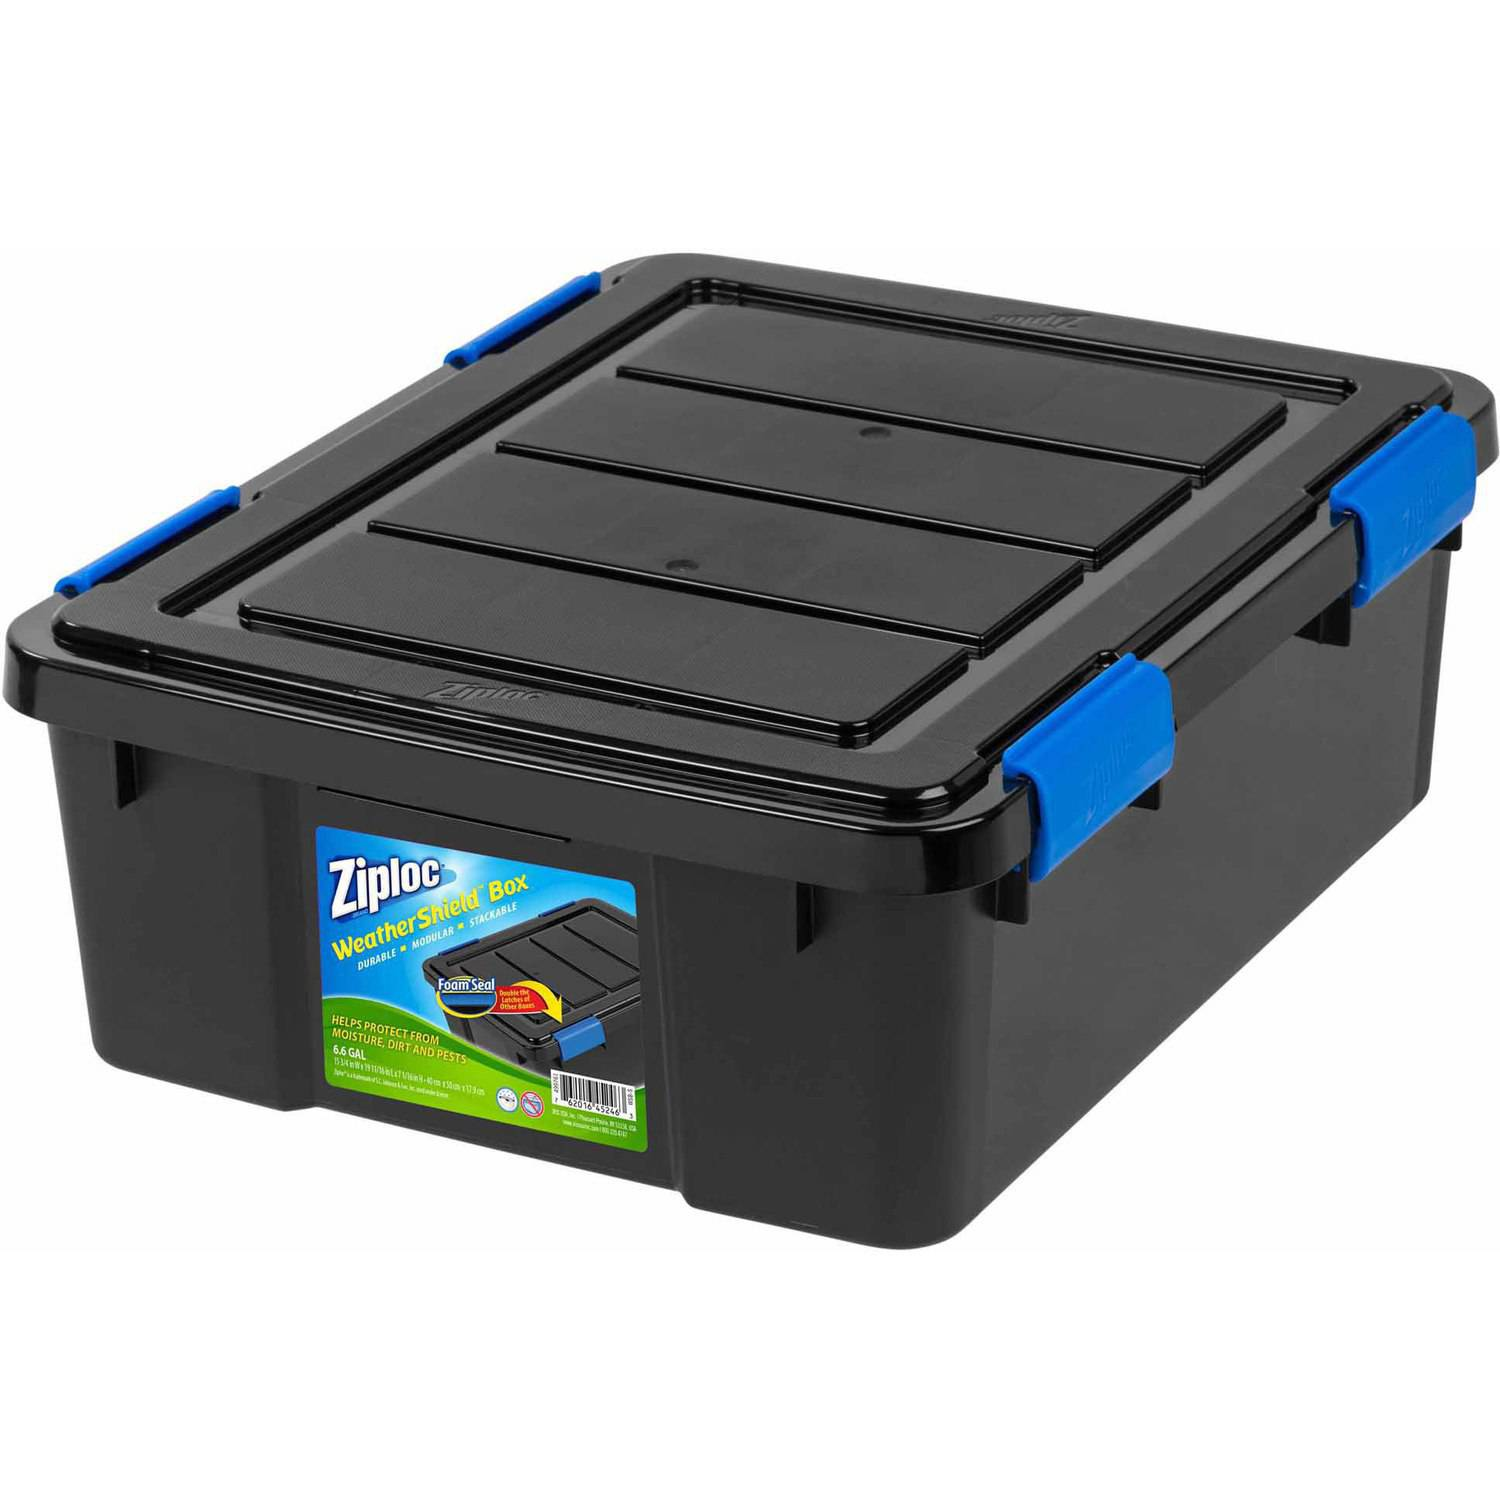 sc 1 st  Walmart & Ziploc 26.5 Qt. Small WeatherShield Storage Box Black - Walmart.com